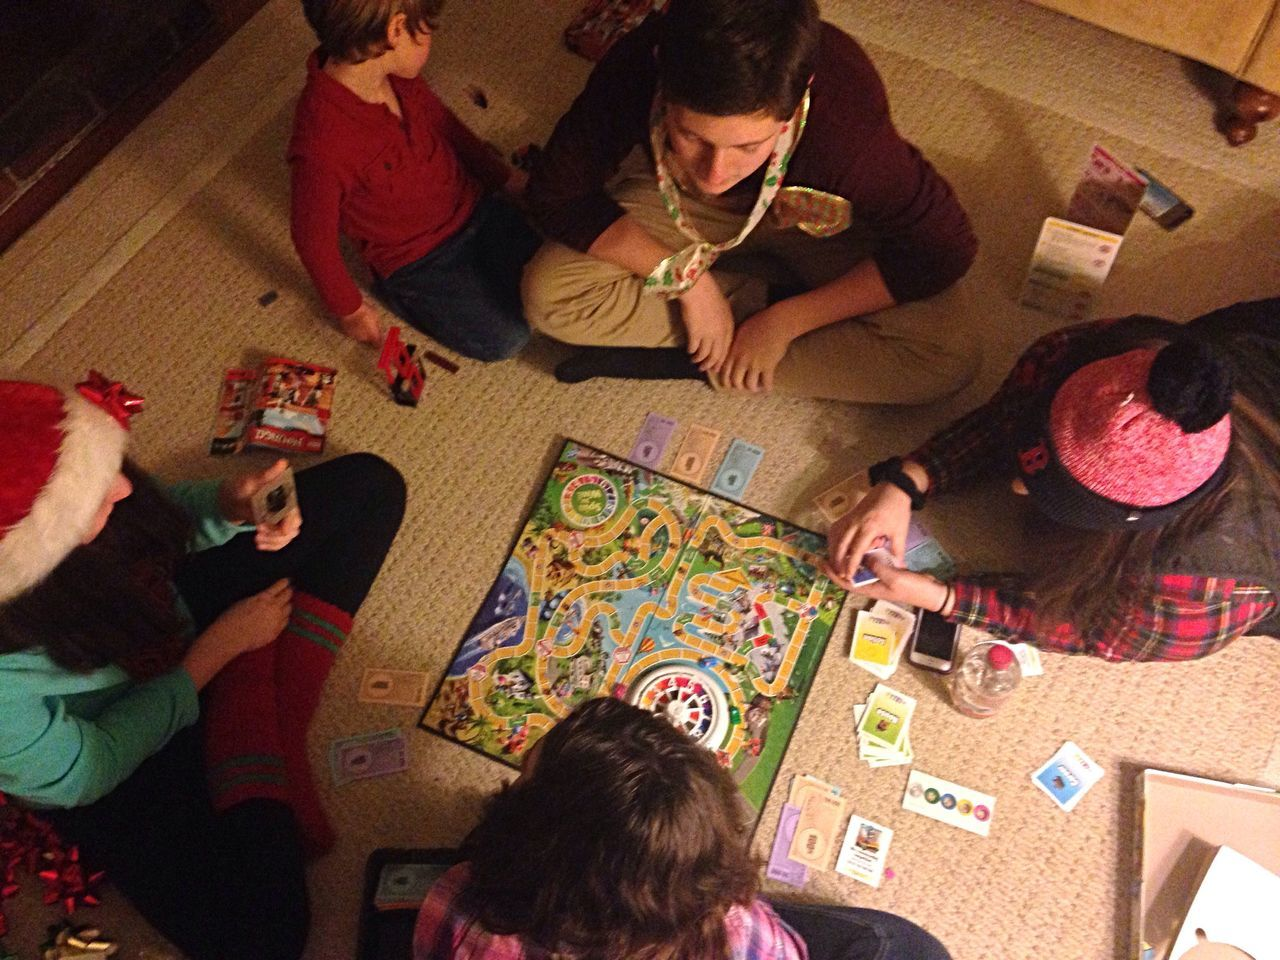 The Game of Life - the cousins going old school and playing aboard game after Xmas dinner Togetherness Playing High Angle View Living Room Cousins  Family Old School Boardgame View From Above Boys And Girls Leisure Games Snapping Pics Quiet Moments Family Time Hanging Out Having Fun Candid